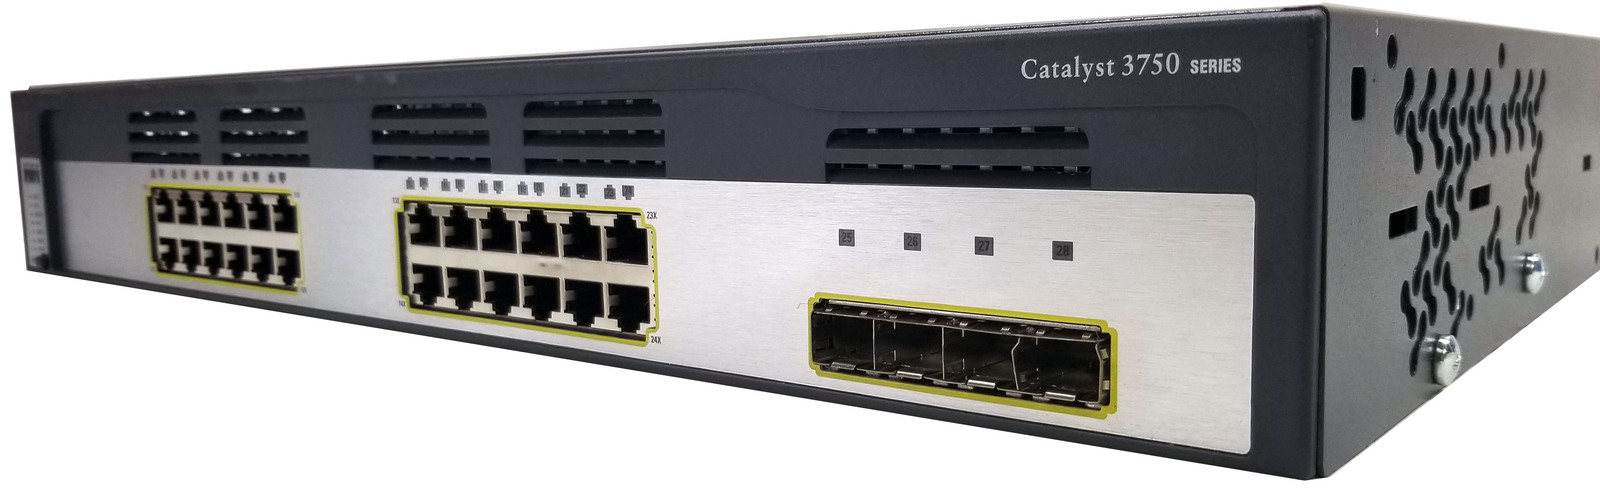 Cisco Catalyst 3750G 24-TS-S 24 Port Gigabit Switch Bin: 6